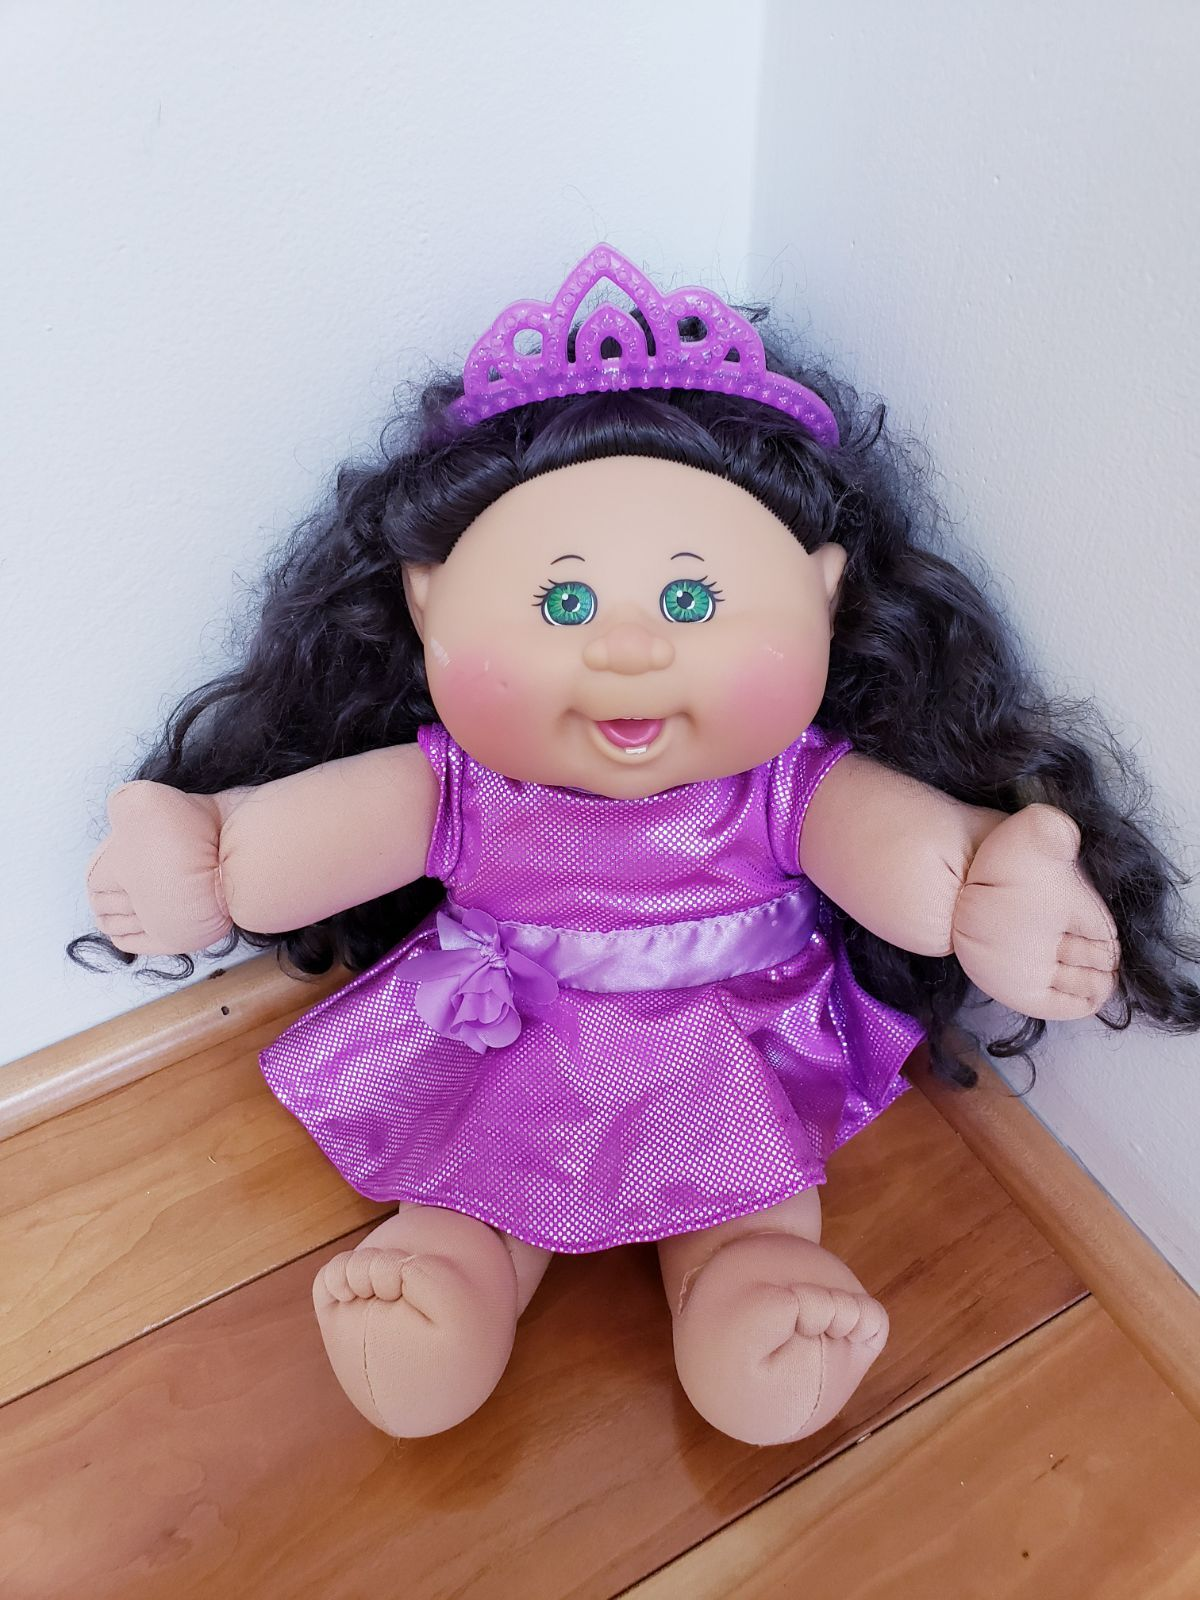 1978 2015 Tiara Cabbage Patch Doll with beautiful curly black hair with  purple tiara and dress. Please see last picture for… | Black curly hair, Cabbage  patch kids dolls, Cabbage patch kids